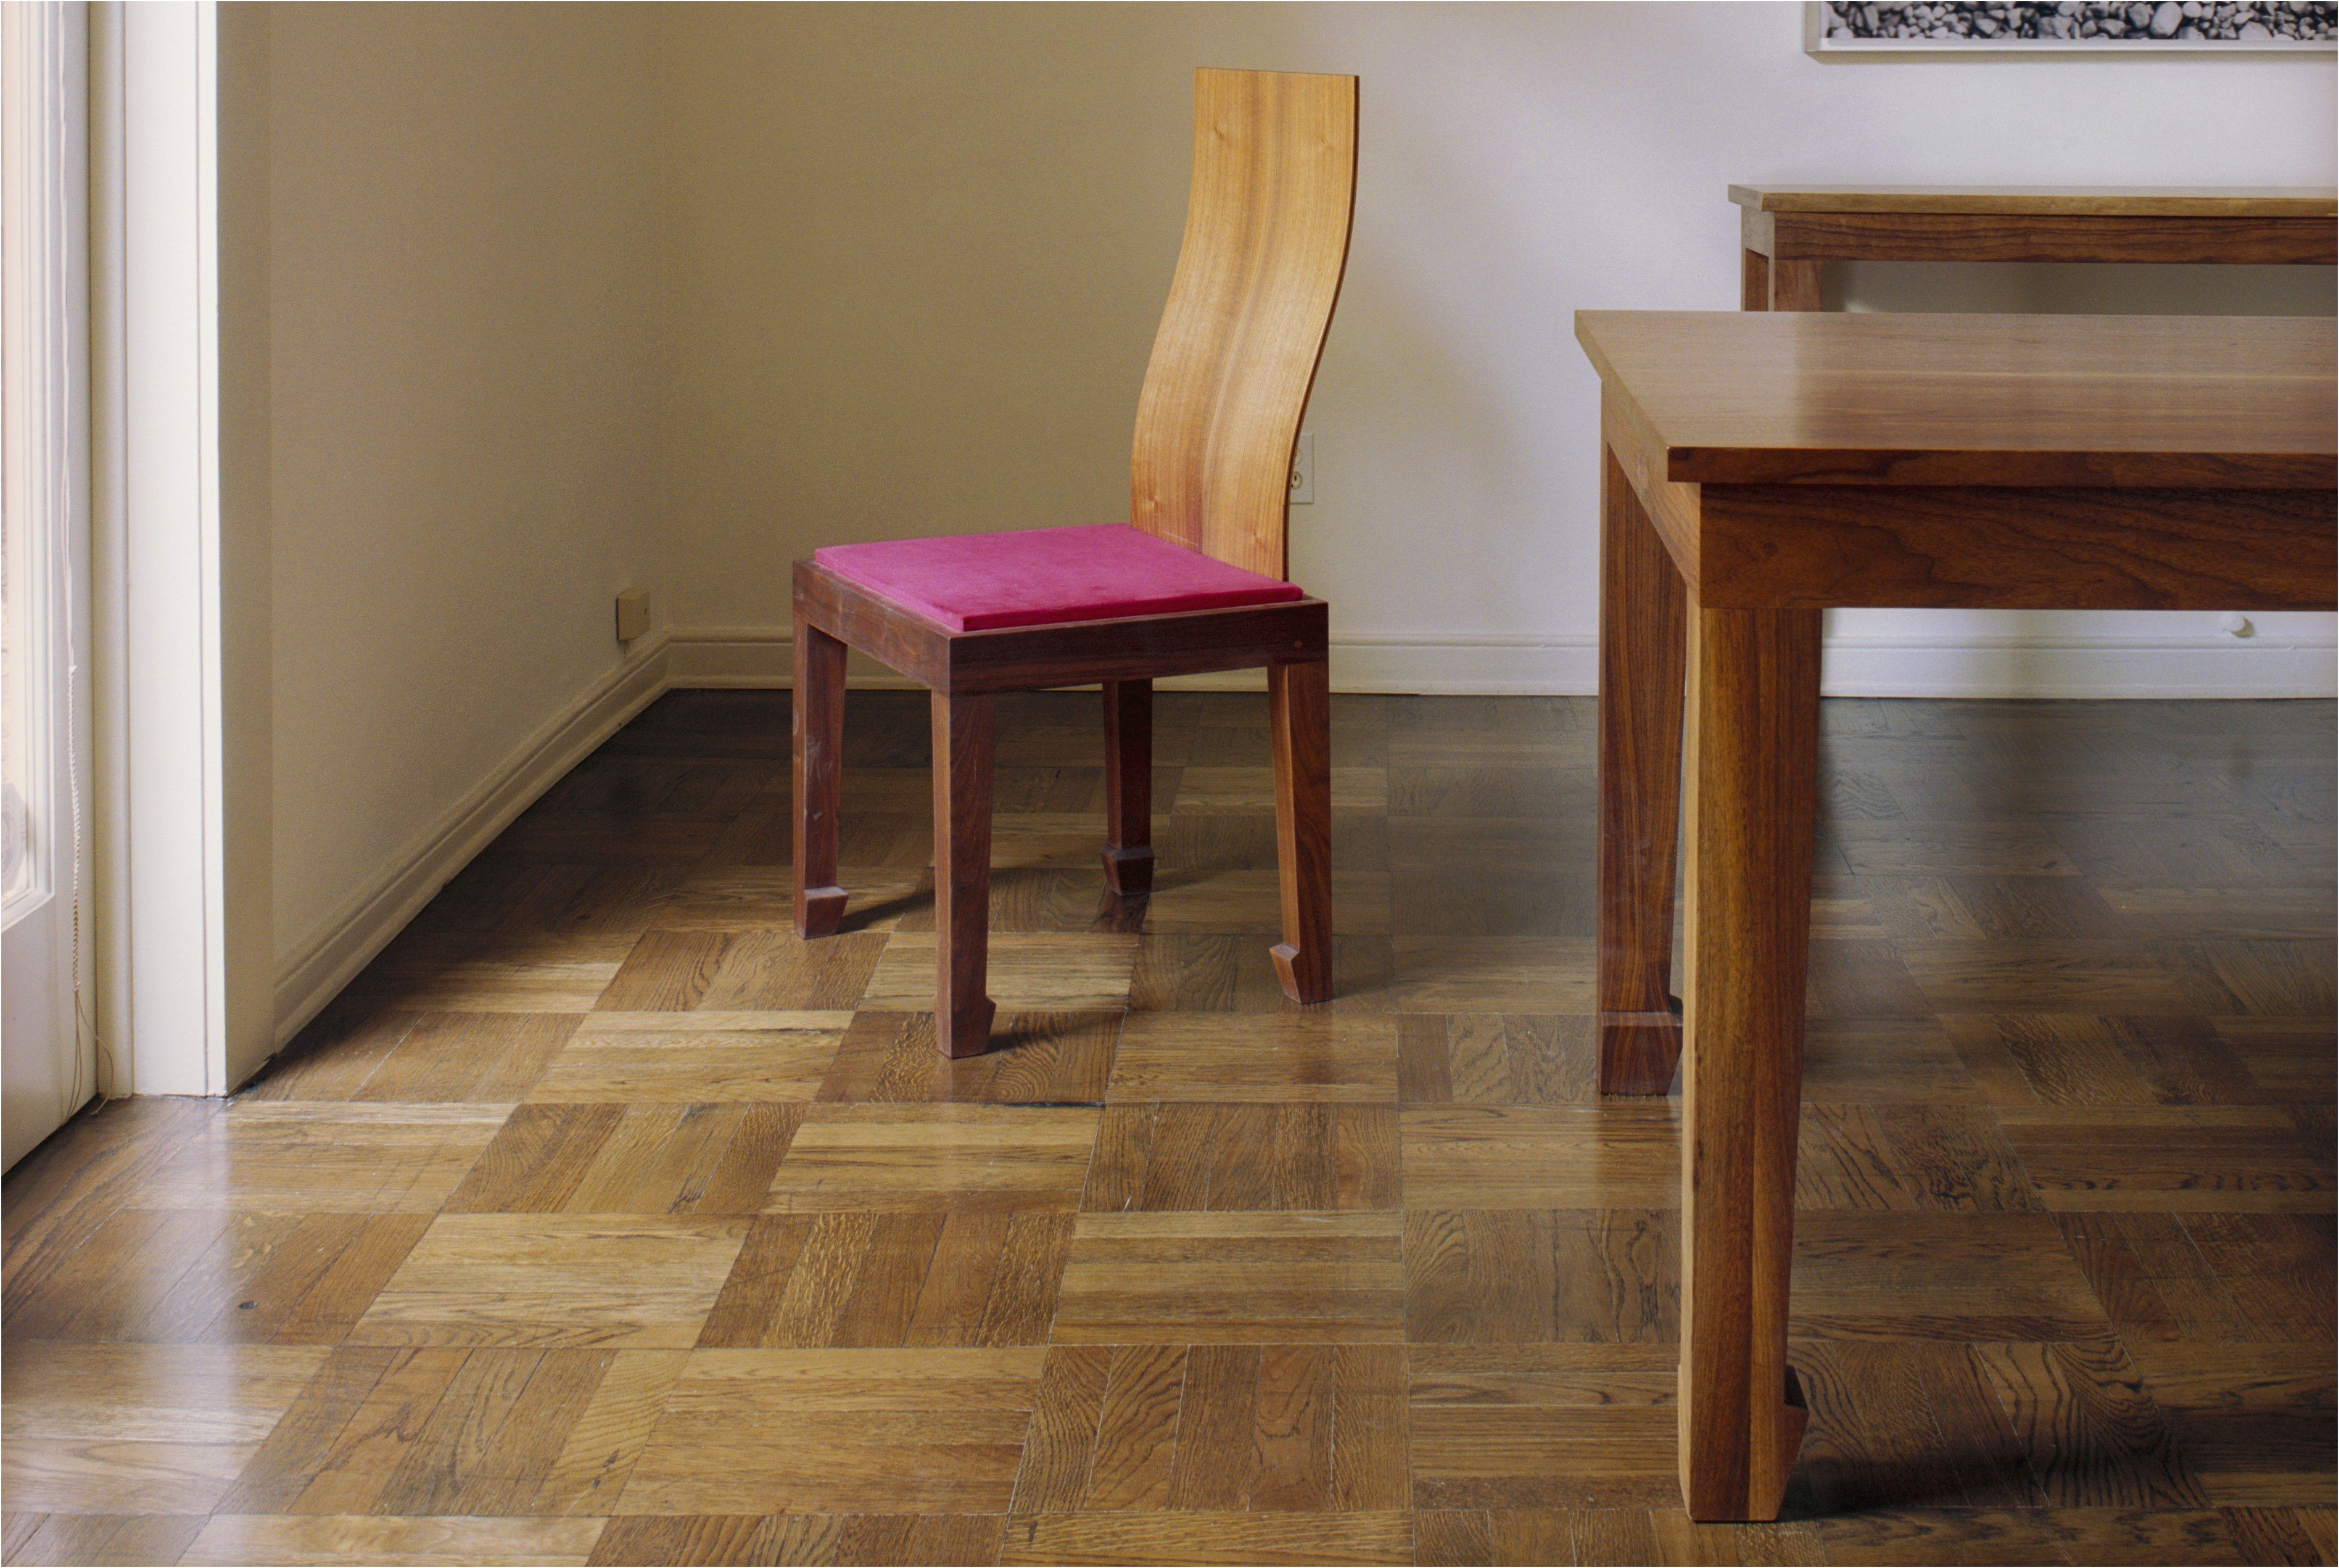 hardwood flooring mills tennessee of hardwood flooring over ceramic tile stock 3 4 x 4 3 4 solid golden within hardwood flooring over ceramic tile photographies wood parquet flooring is it time to bring it back